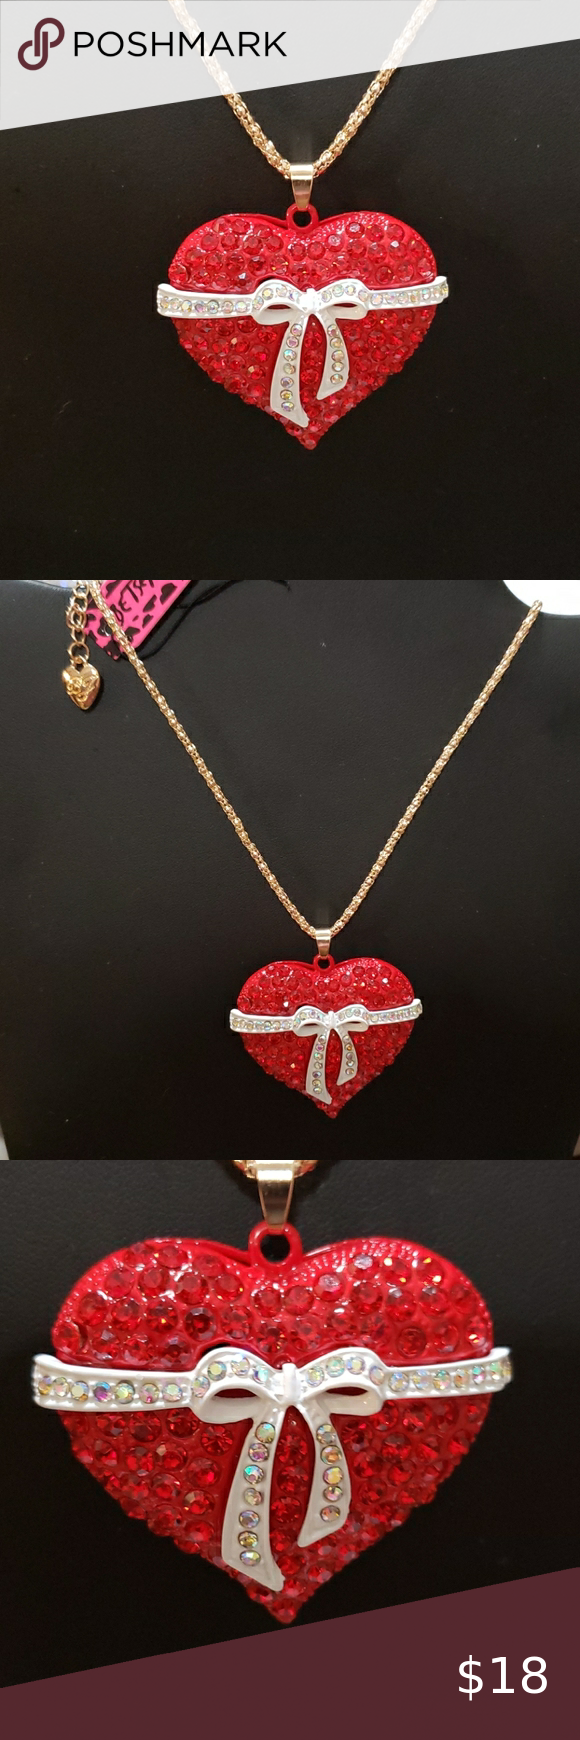 Nwt Red Crystal Heart Necklace By Betsey Johnson In 2020 Crystal Heart Necklace Betsey Johnson Jewelry Crystal Heart